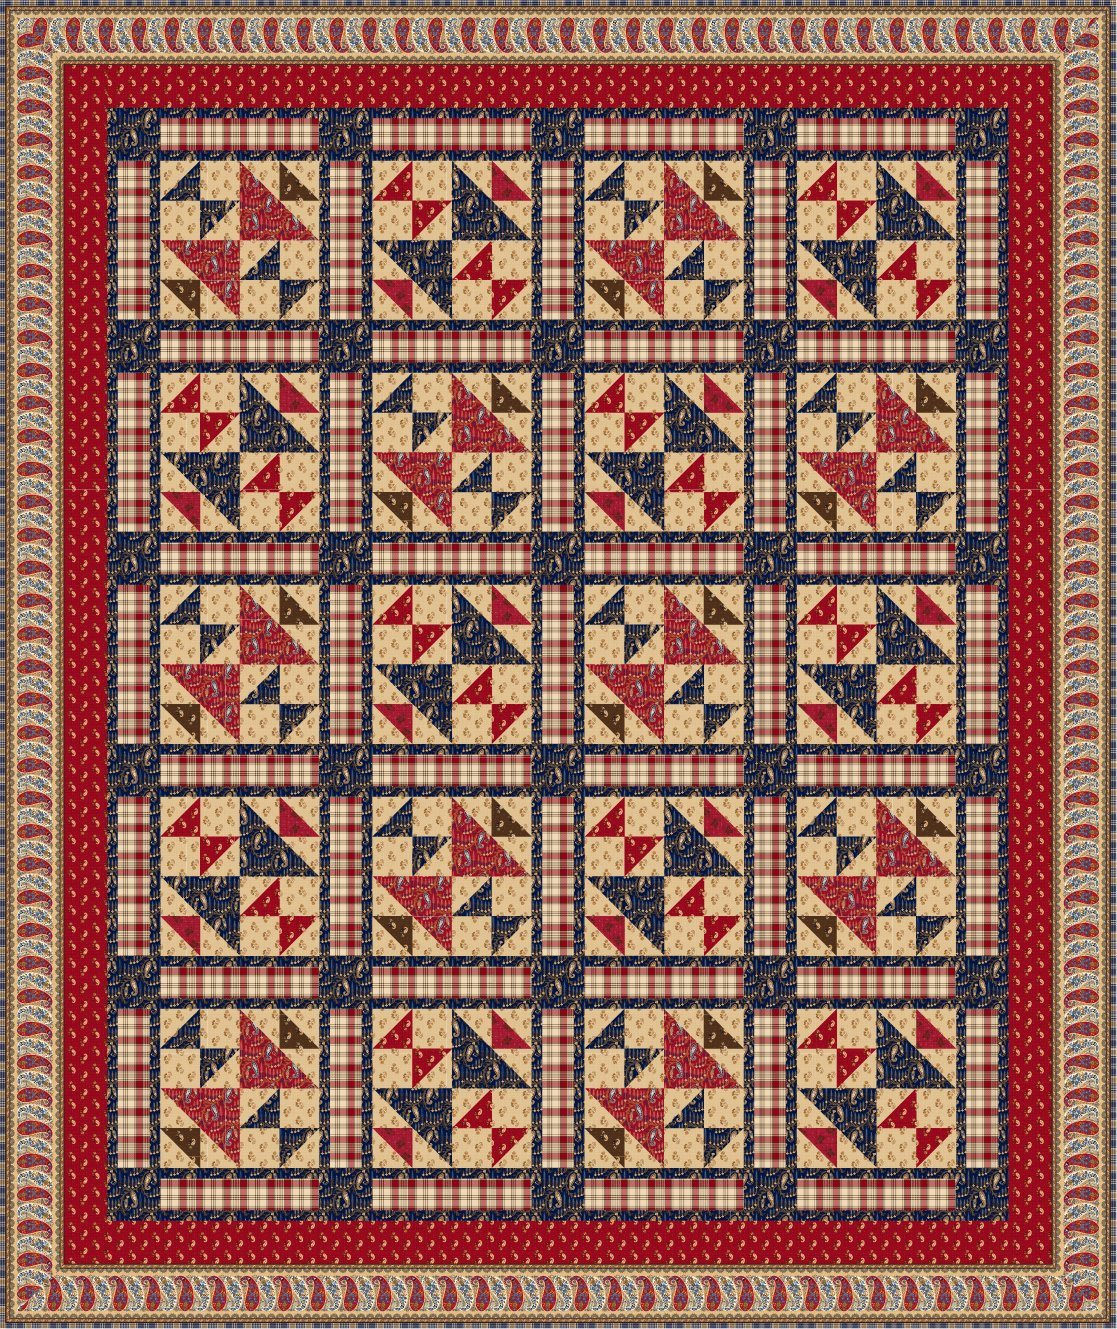 Whispers of Wisdom Pieced Quilt (with Paisley Border)